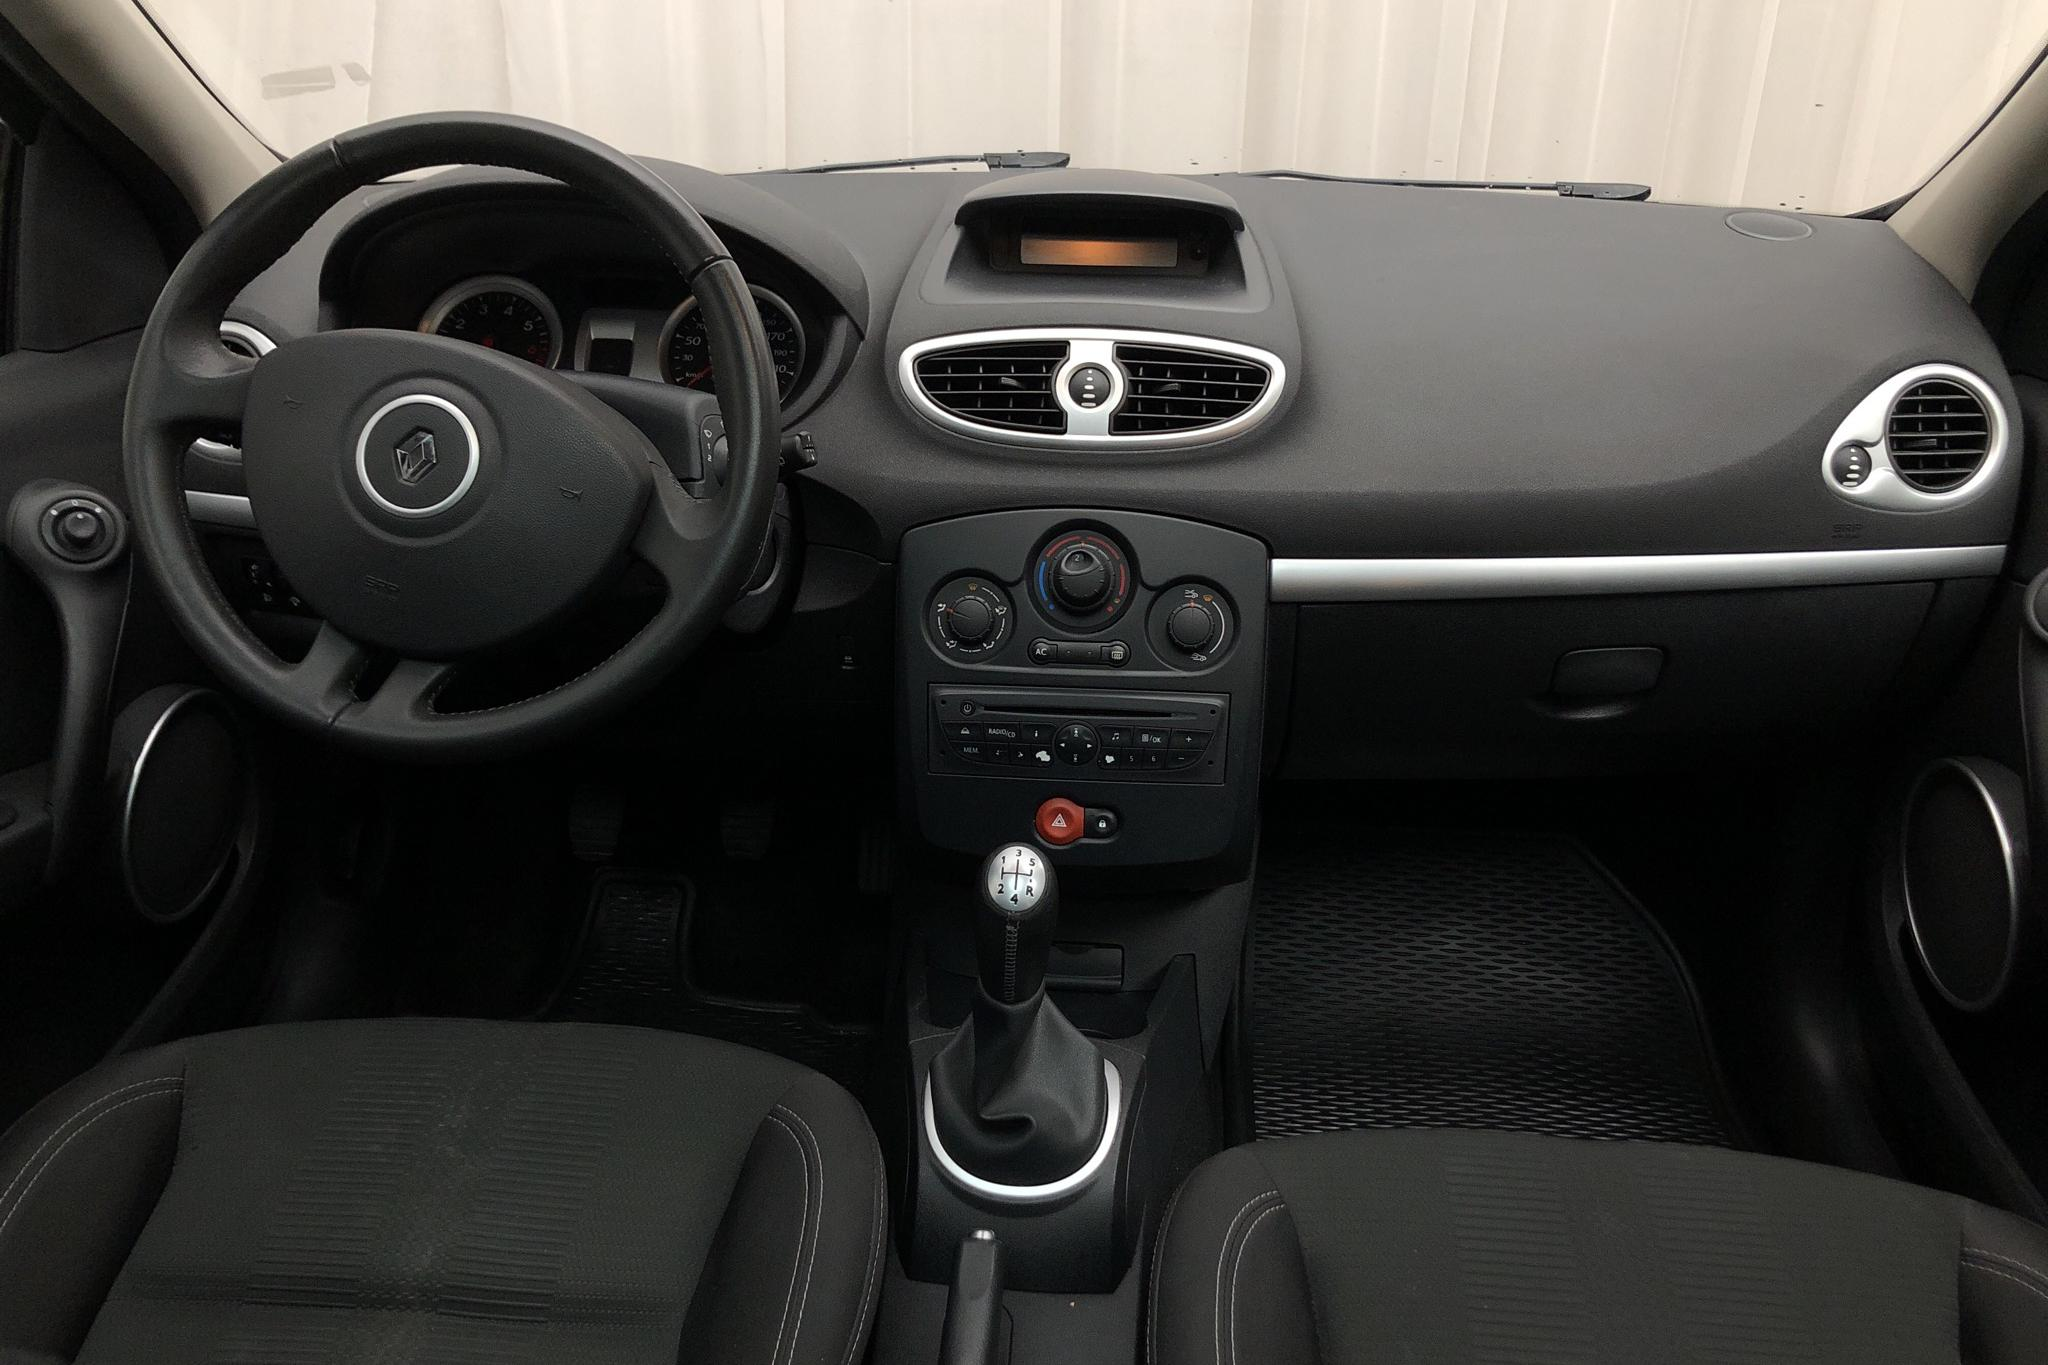 Renault Clio III 1.2 TCE 100 5dr (101hk) - 90 620 km - Manual - white - 2011